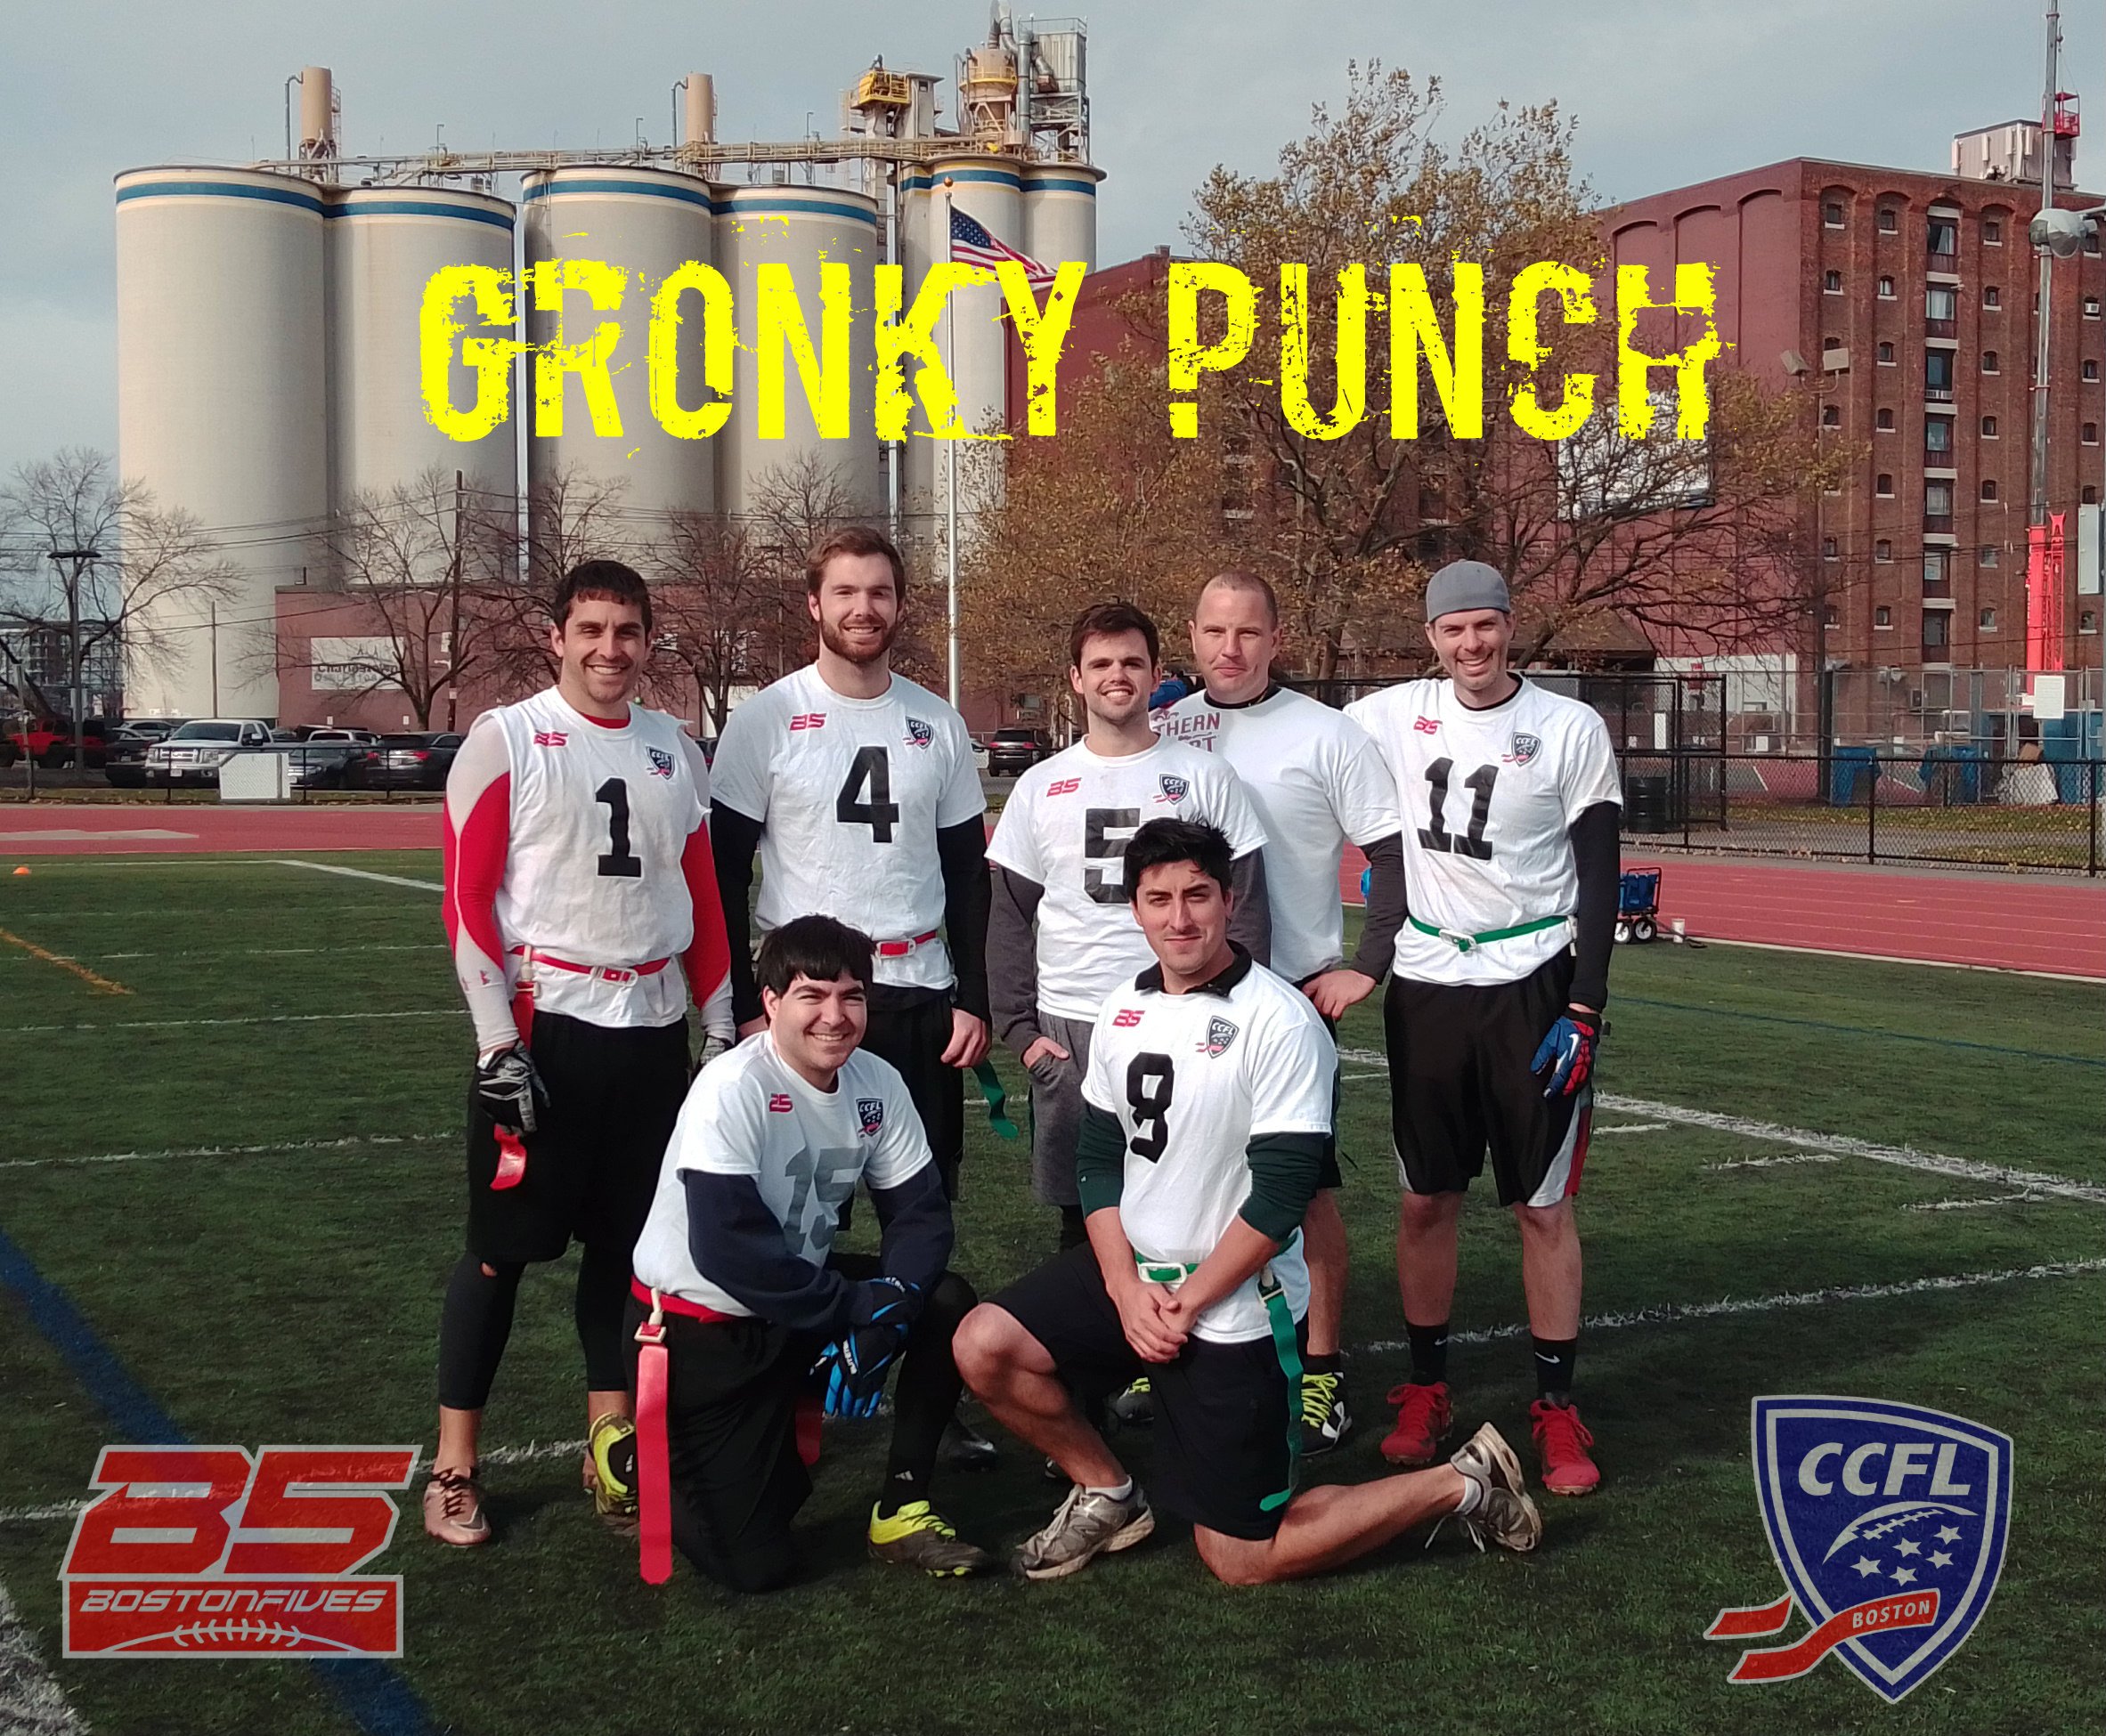 GronkyPunch